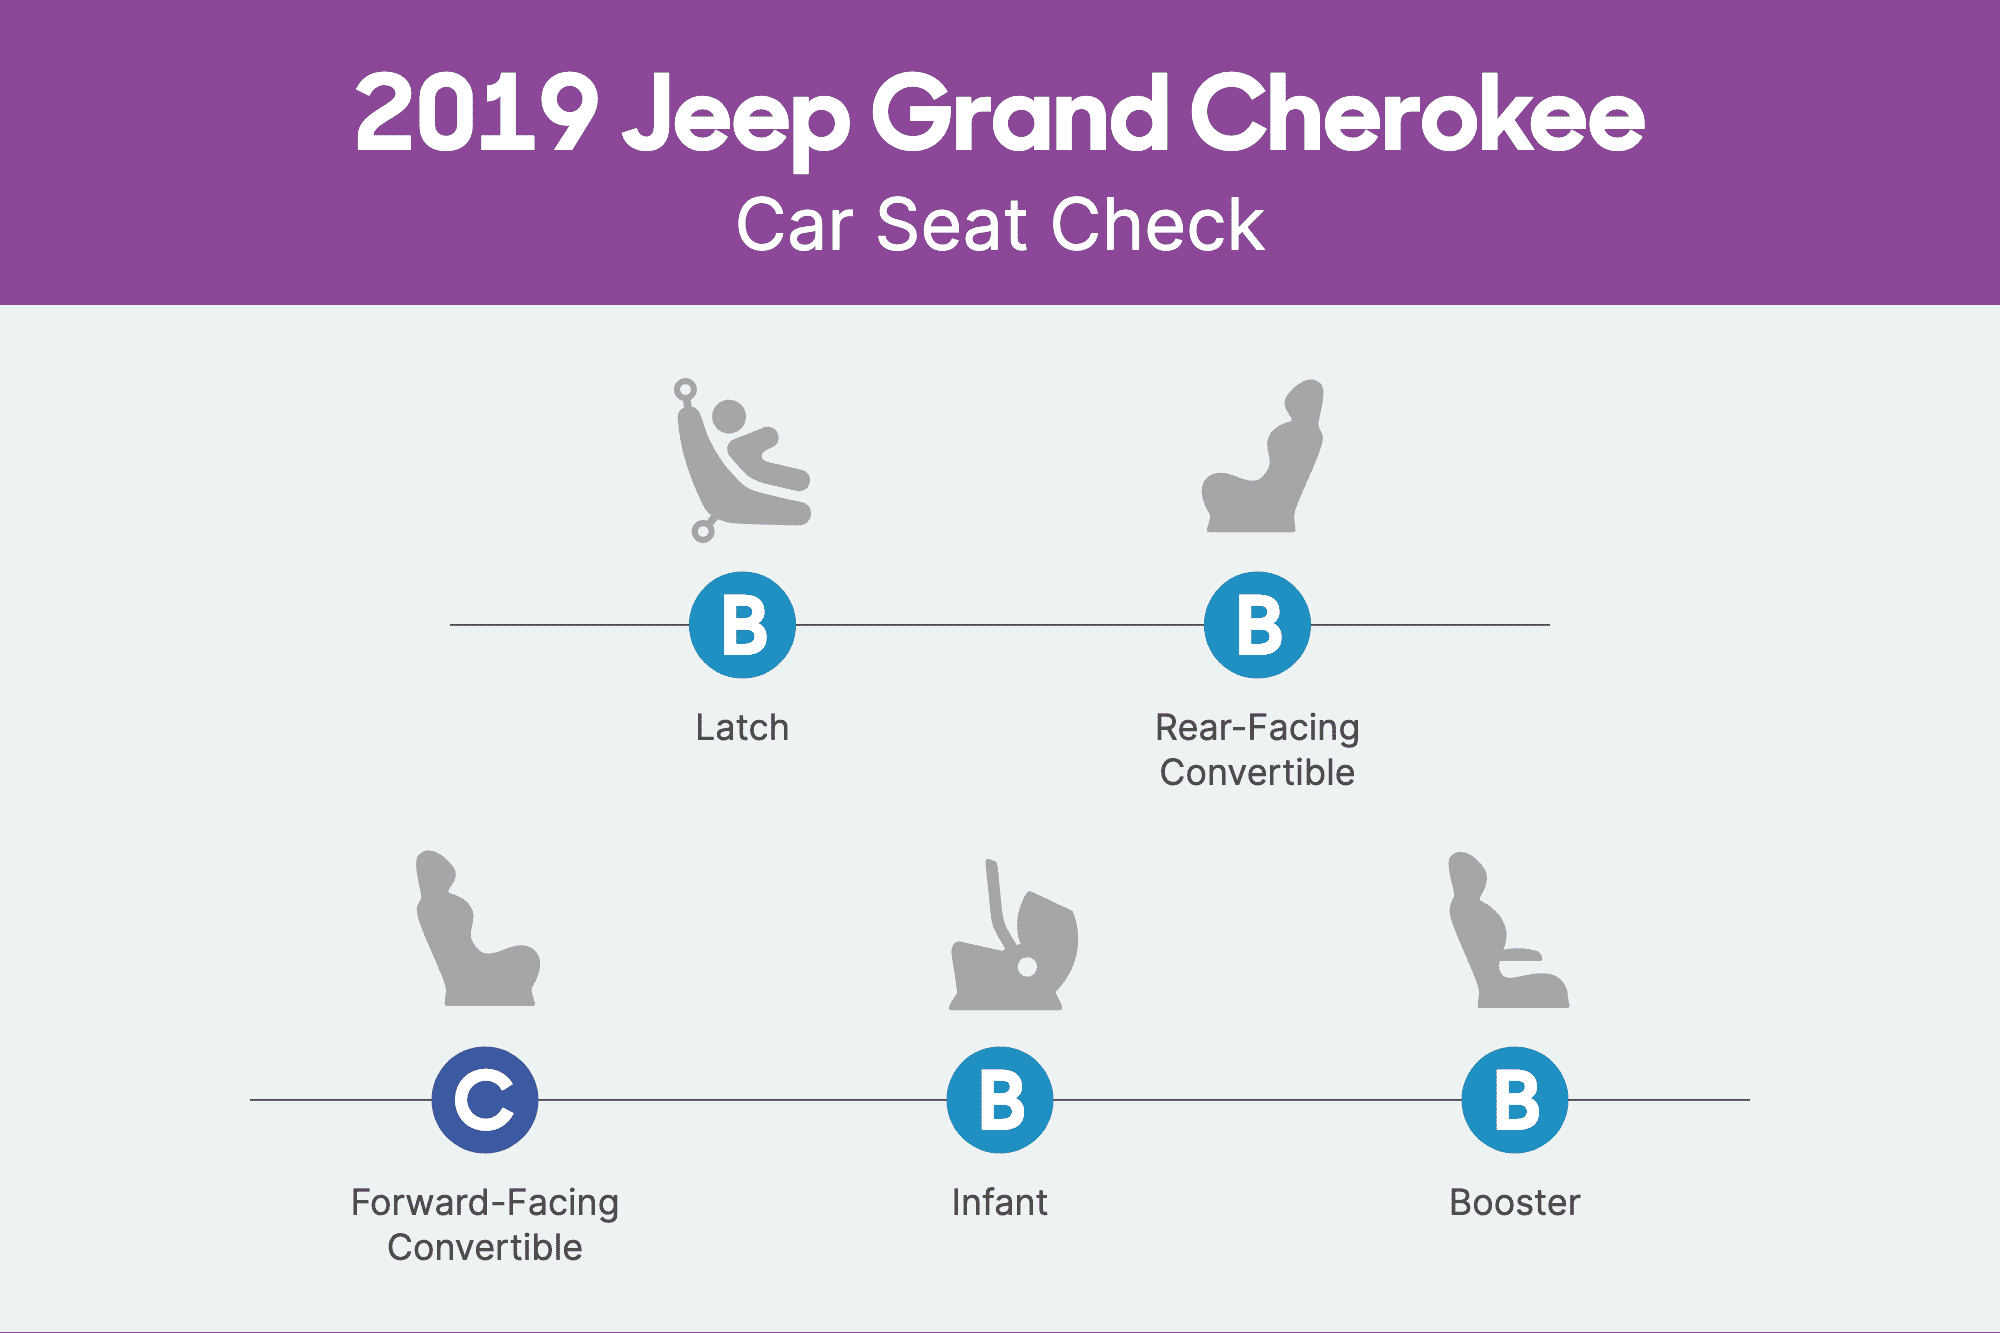 How Do Car Seats Fit in a 2019 Jeep Grand Cherokee?